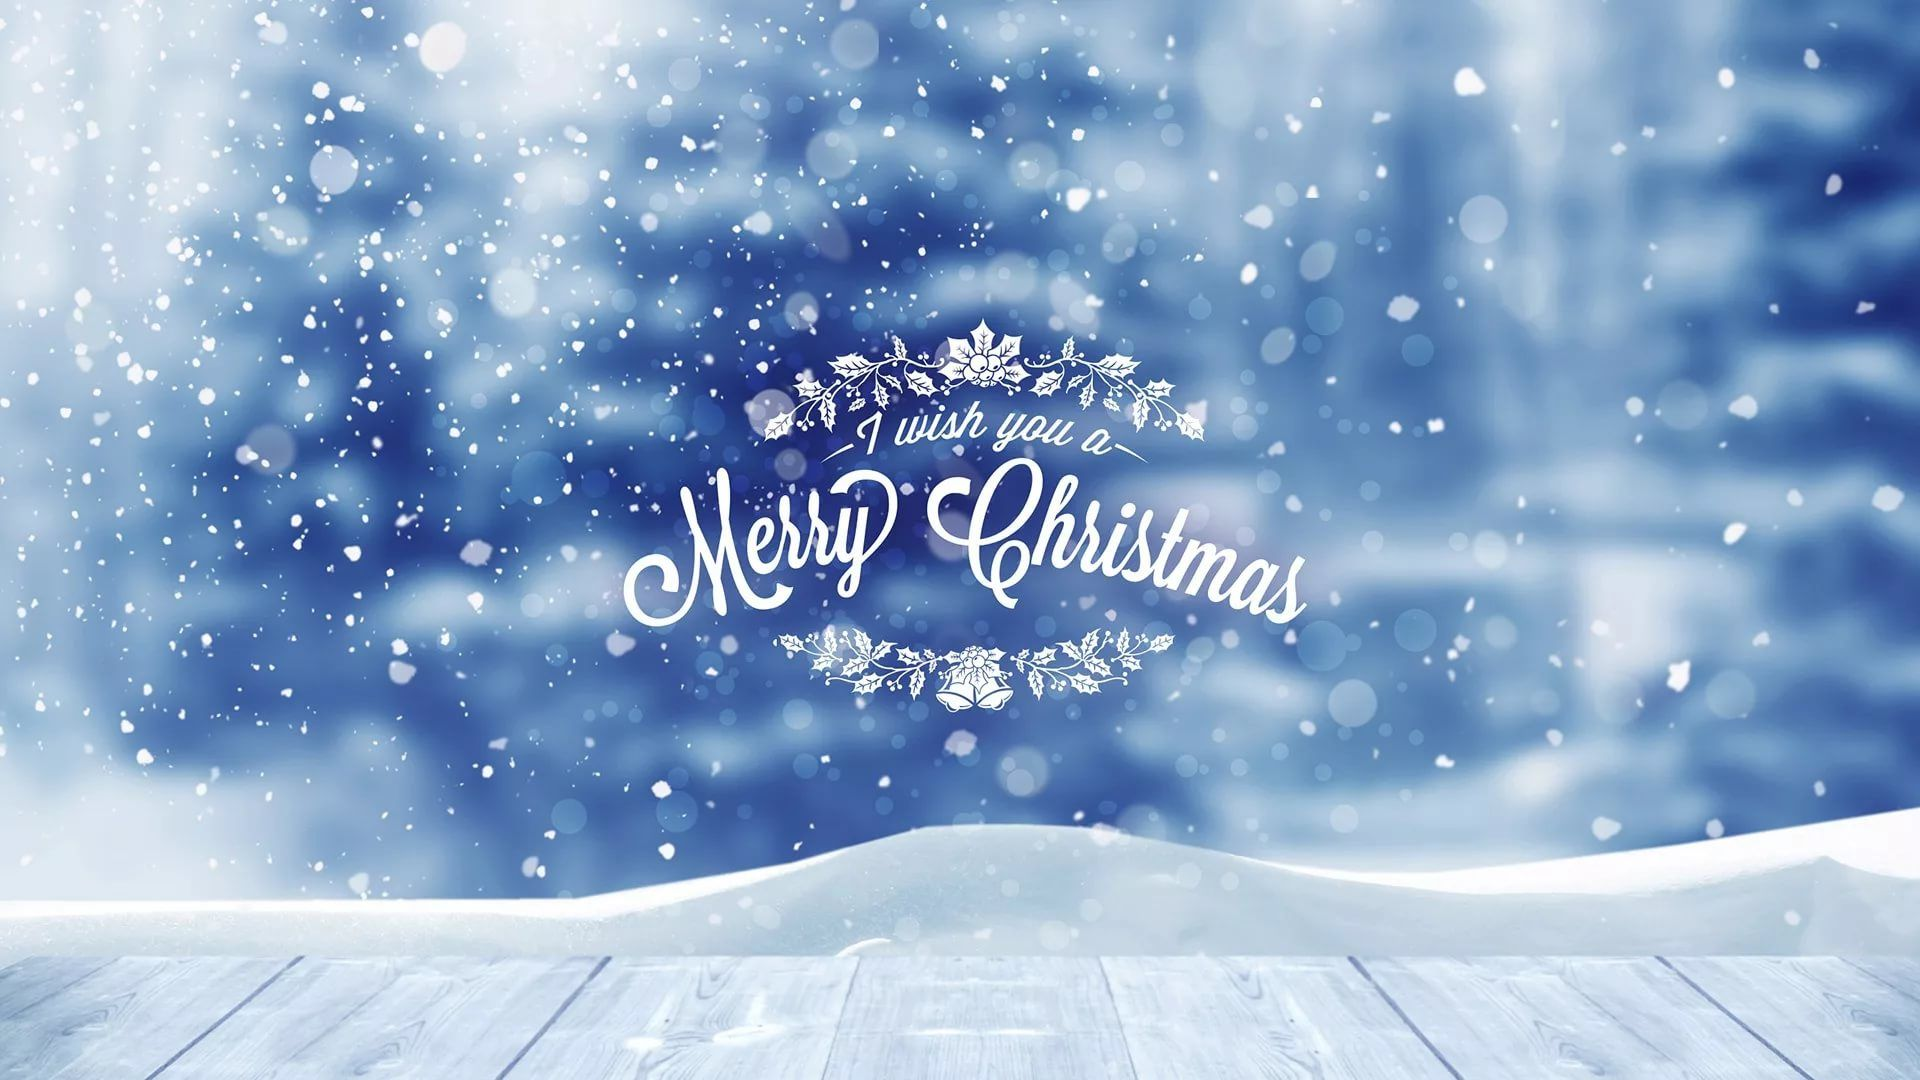 21 Merry Christmas Wallpapers Wallpaperboat